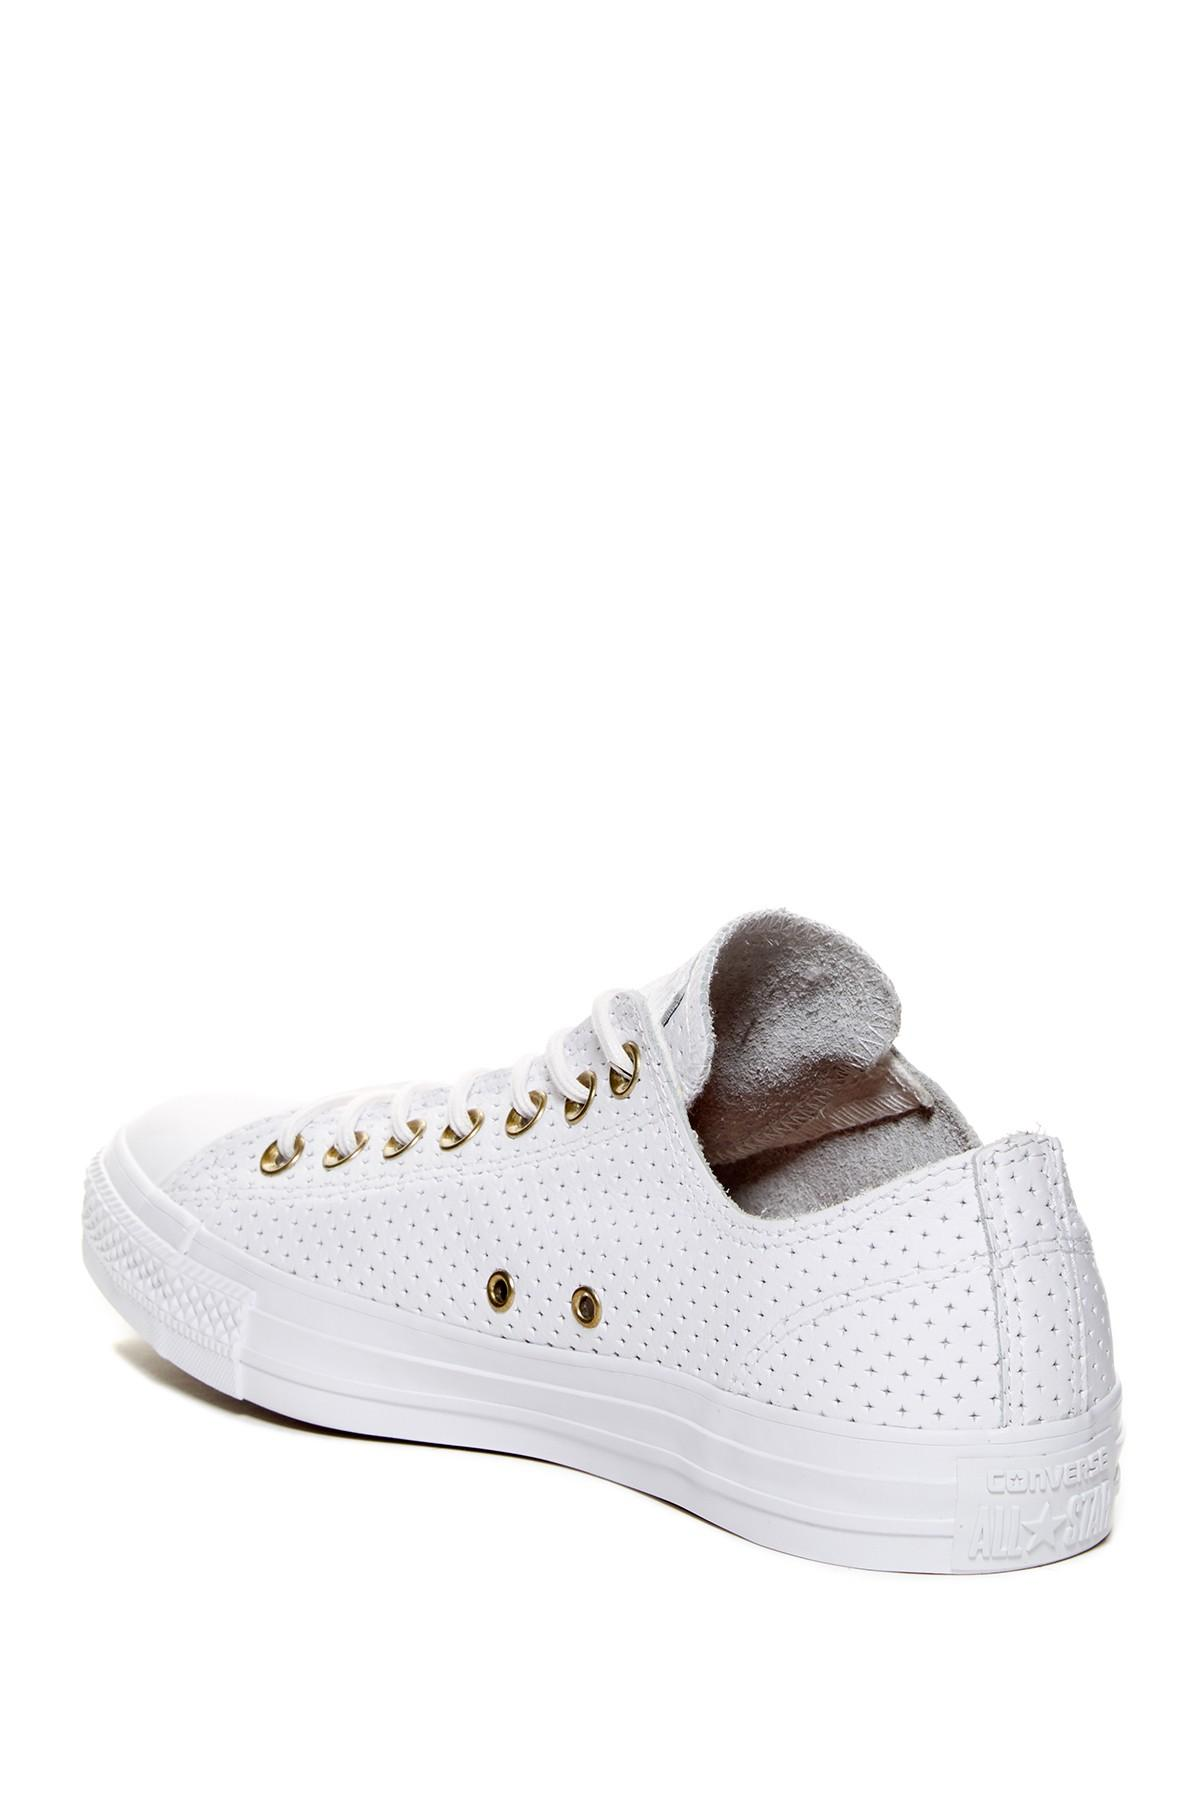 06fabfd16385 Lyst - Converse Chuck Taylor All Star Perforated Leather Oxford Low ...